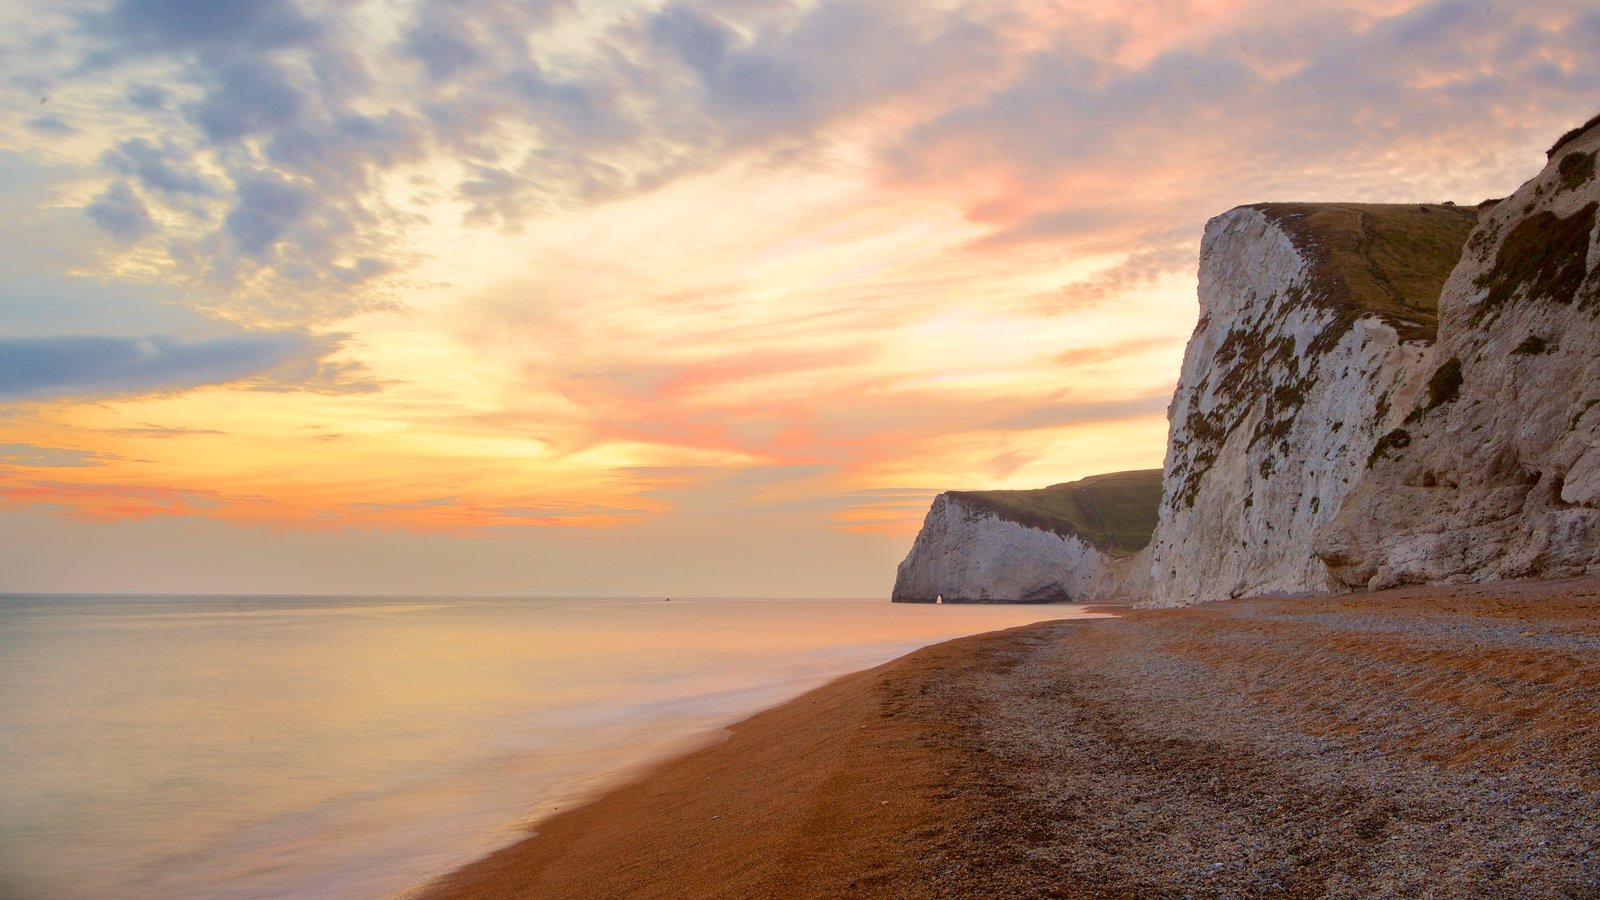 Durdle Door which includes a pebble beach, rugged coastline and a sunset